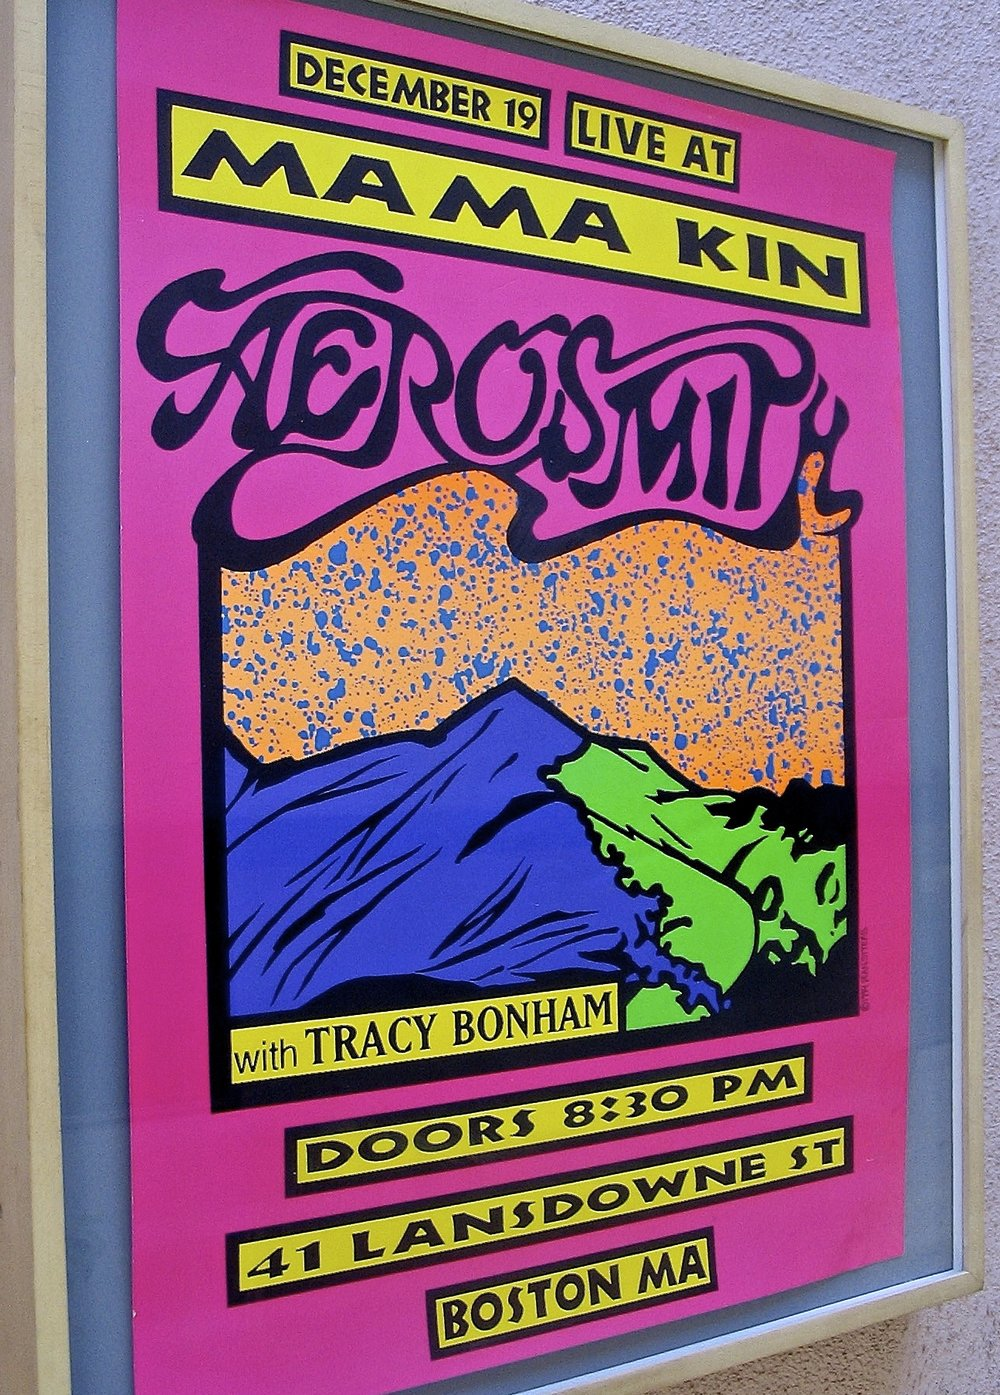 Old Aerosmith poster design.